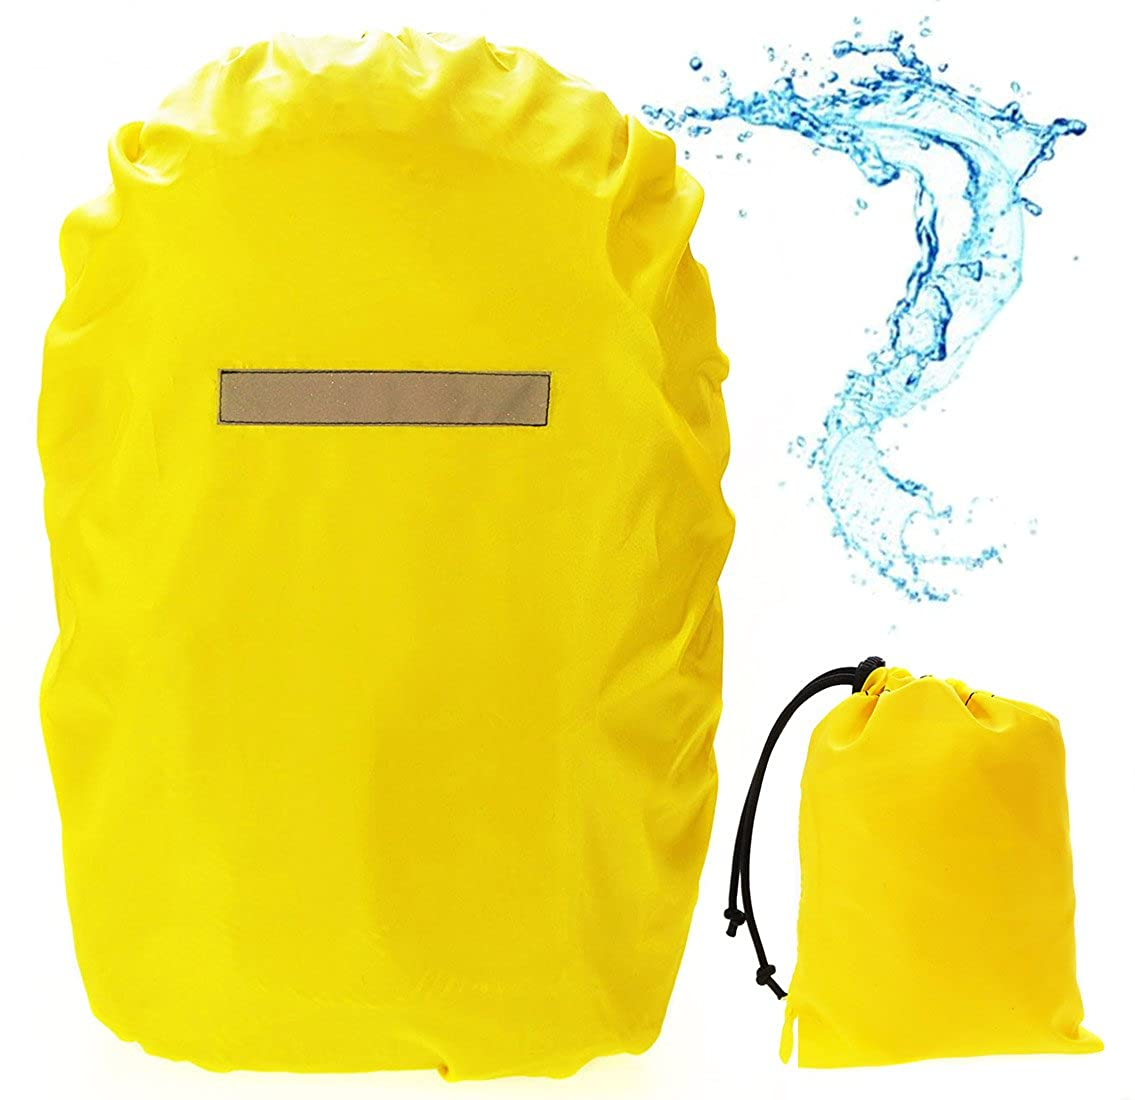 Waterproof cover for backpack Raincovers Rainproof Dust Raincover 35-55 L [070]